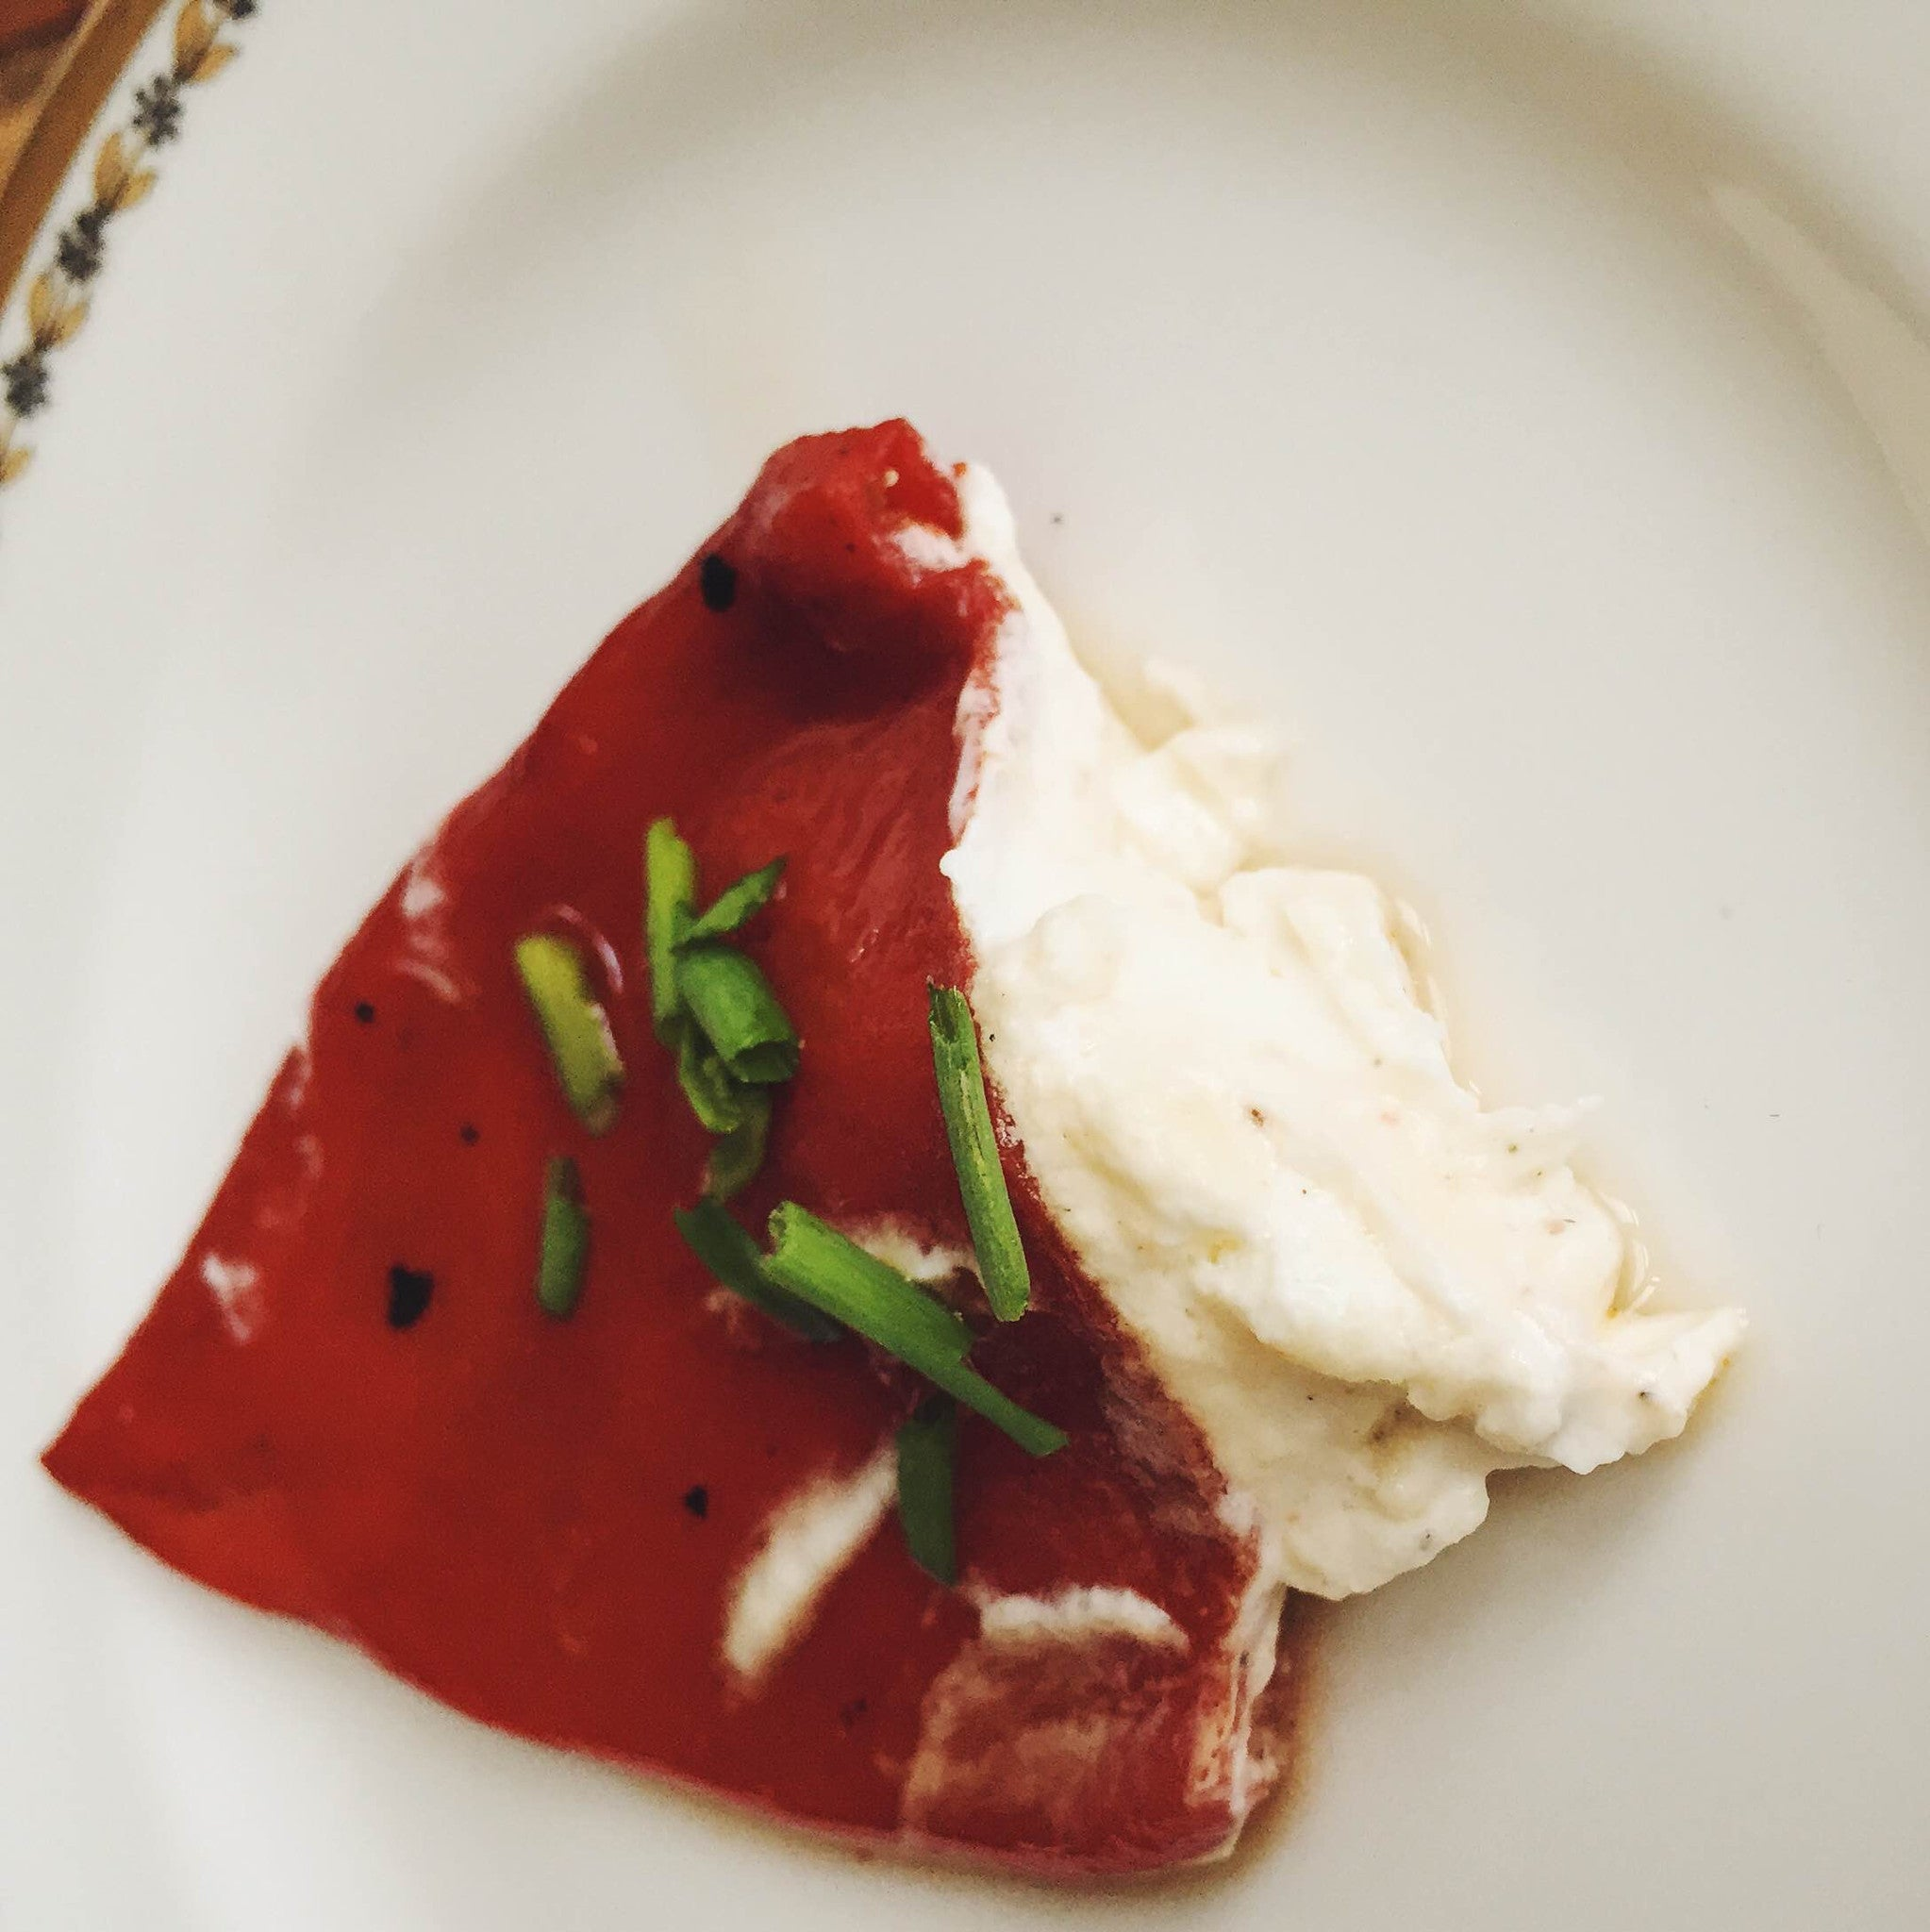 Pan-Seared Piquillo Pepper stuffed with Goat Cheese